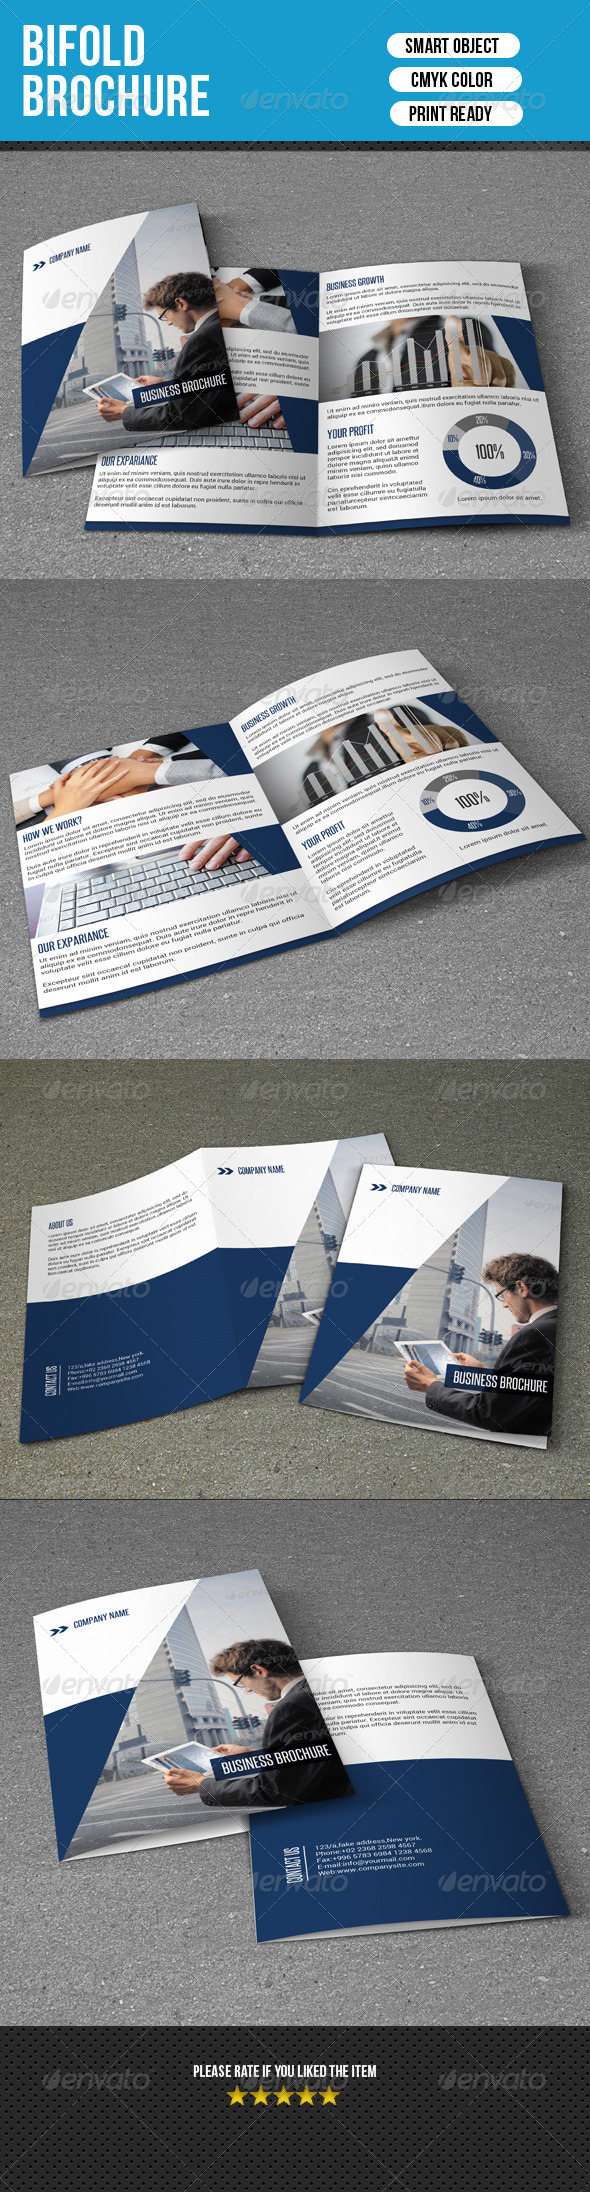 GraphicRiver Bifold Business Brochure-V02 7752647